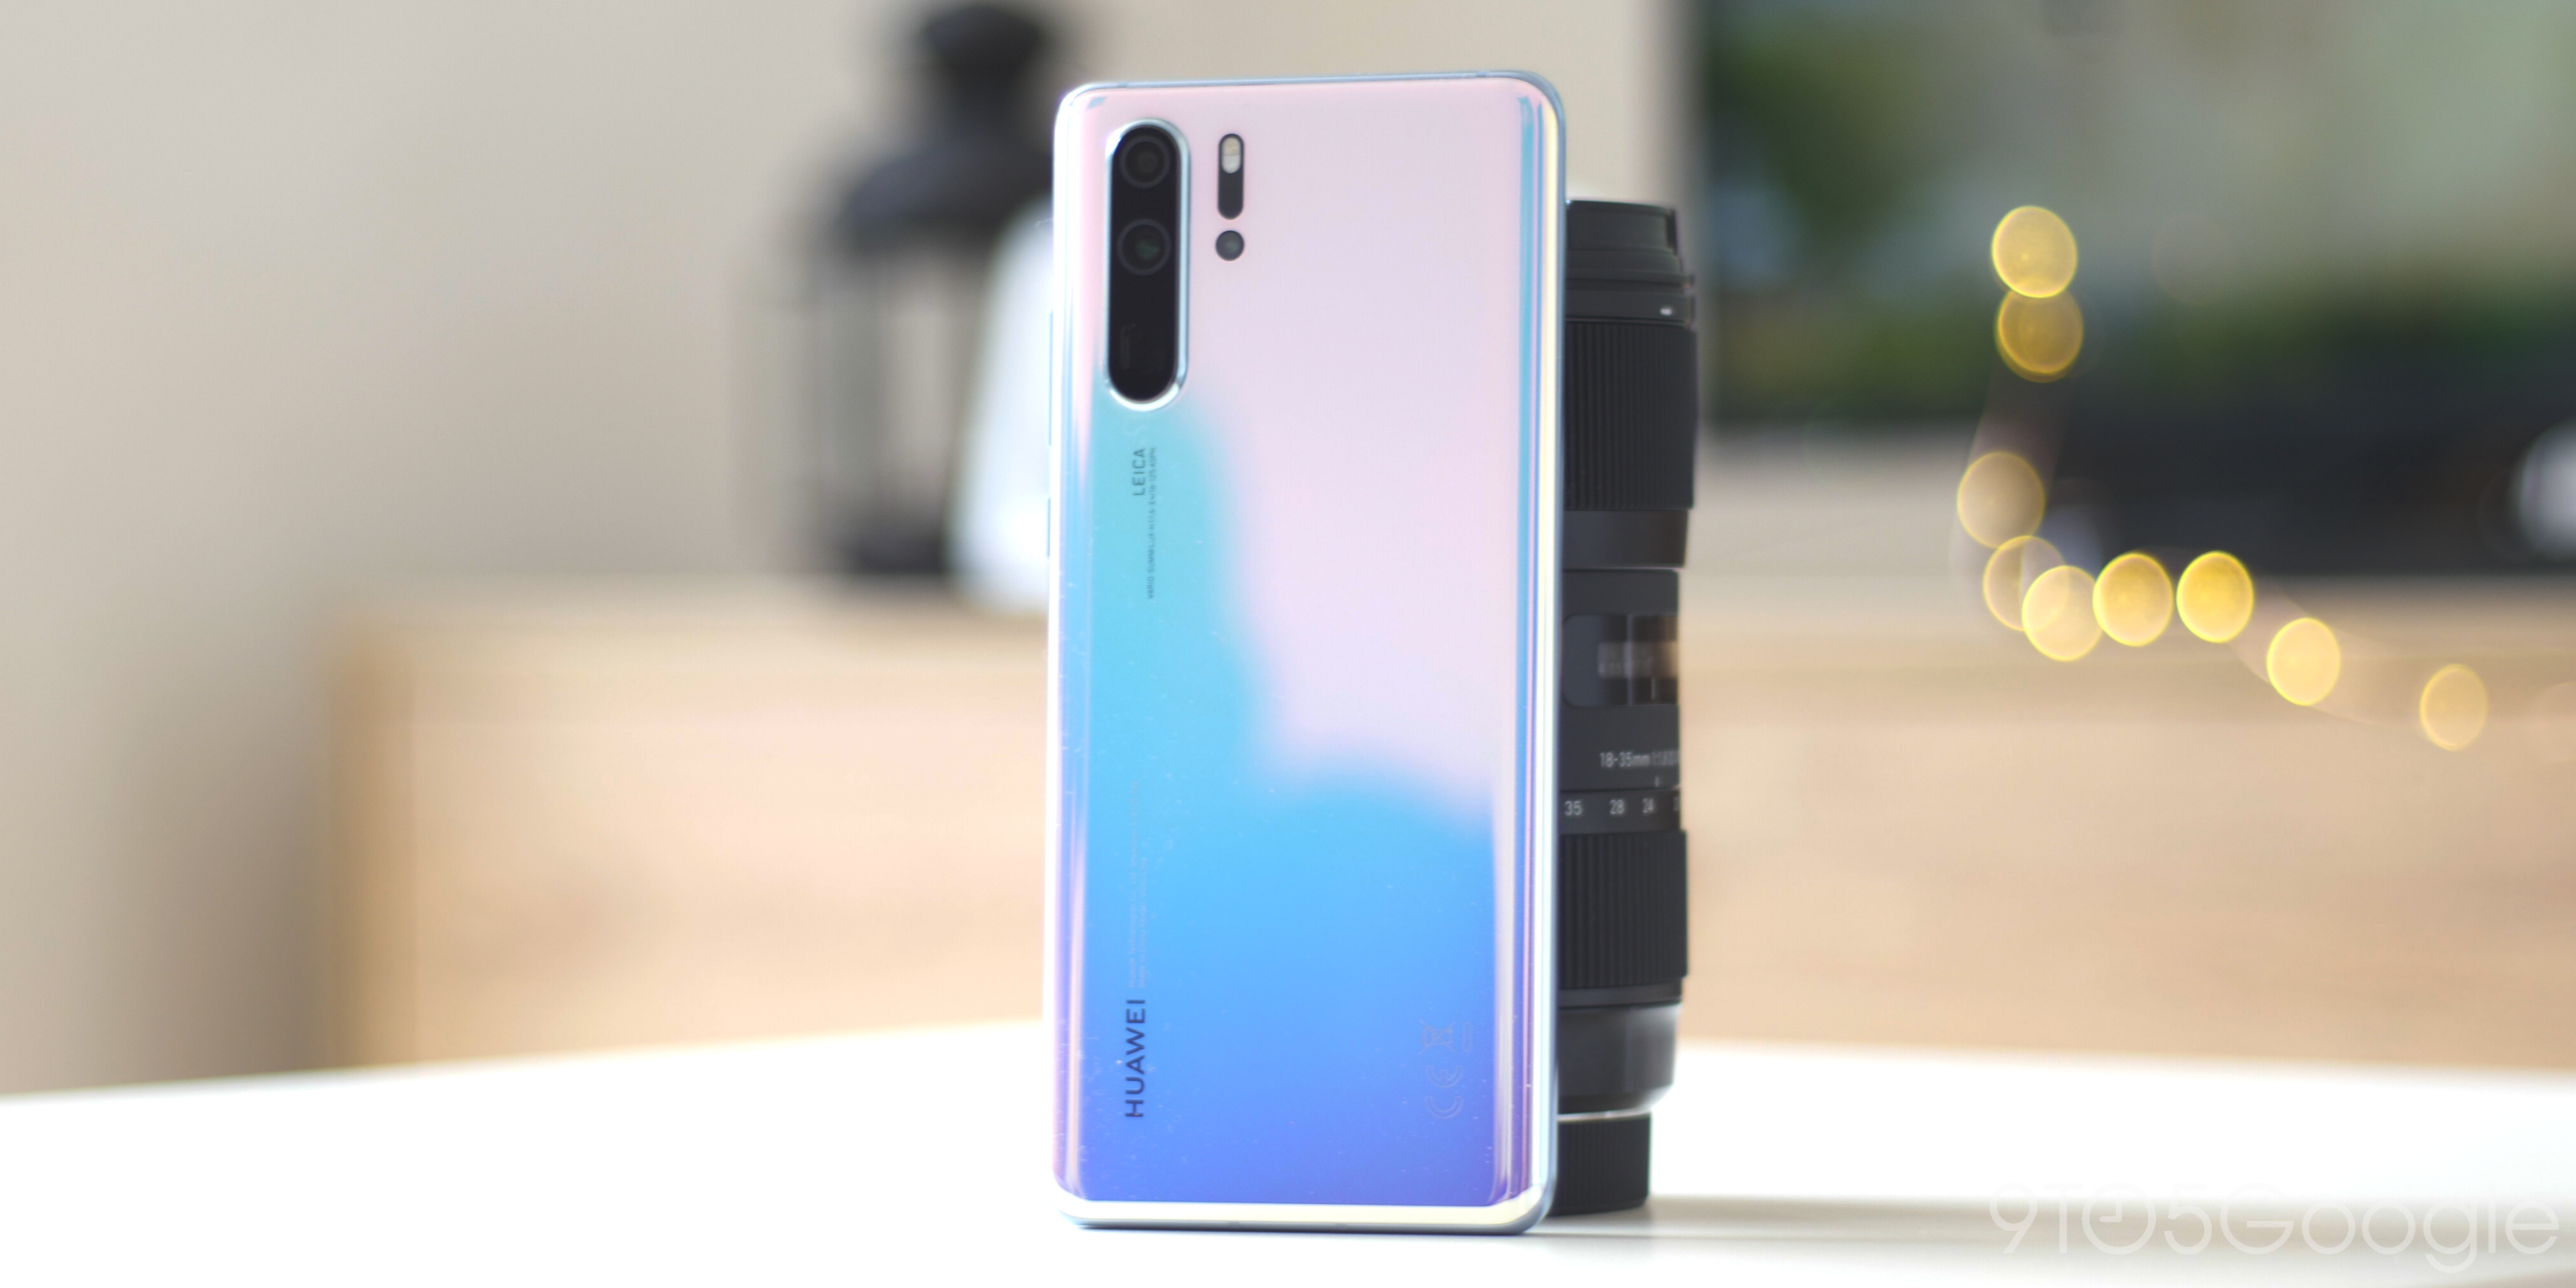 Huawei P30 Pro hardware and design